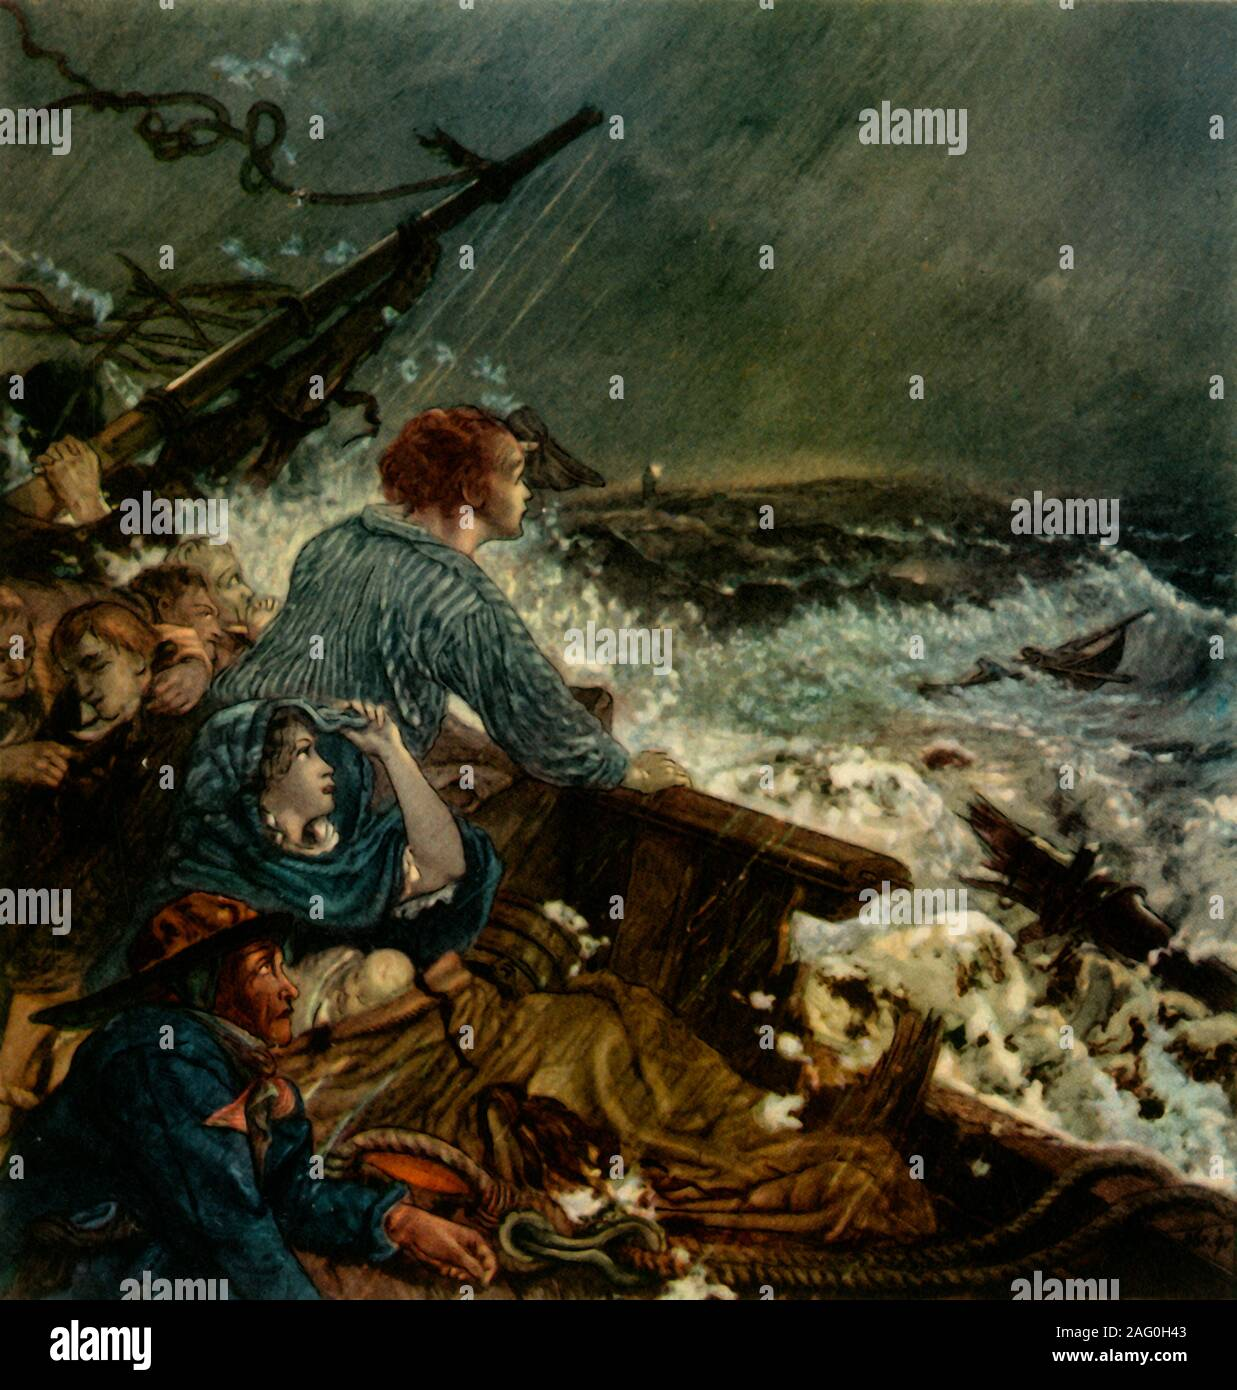 "'Grace Darling and her Father Saving the Shipwrecked Crew, September 8th, 1838', (1942). In 1838 Grace Darling and her father William Darling, a local lighthouse keeper, heroically rescued victims of the wreck of the SS 'Forfarshire' off the Farne Islands. She died from tuberculosis in 1842, aged just 26.  Design made 1857-1858 for the decoration of the inner court of Wallington Hall, Northumberland. From ""English Women"", by Edith Sitwell. [Collins, London, 1942] Stock Photo"